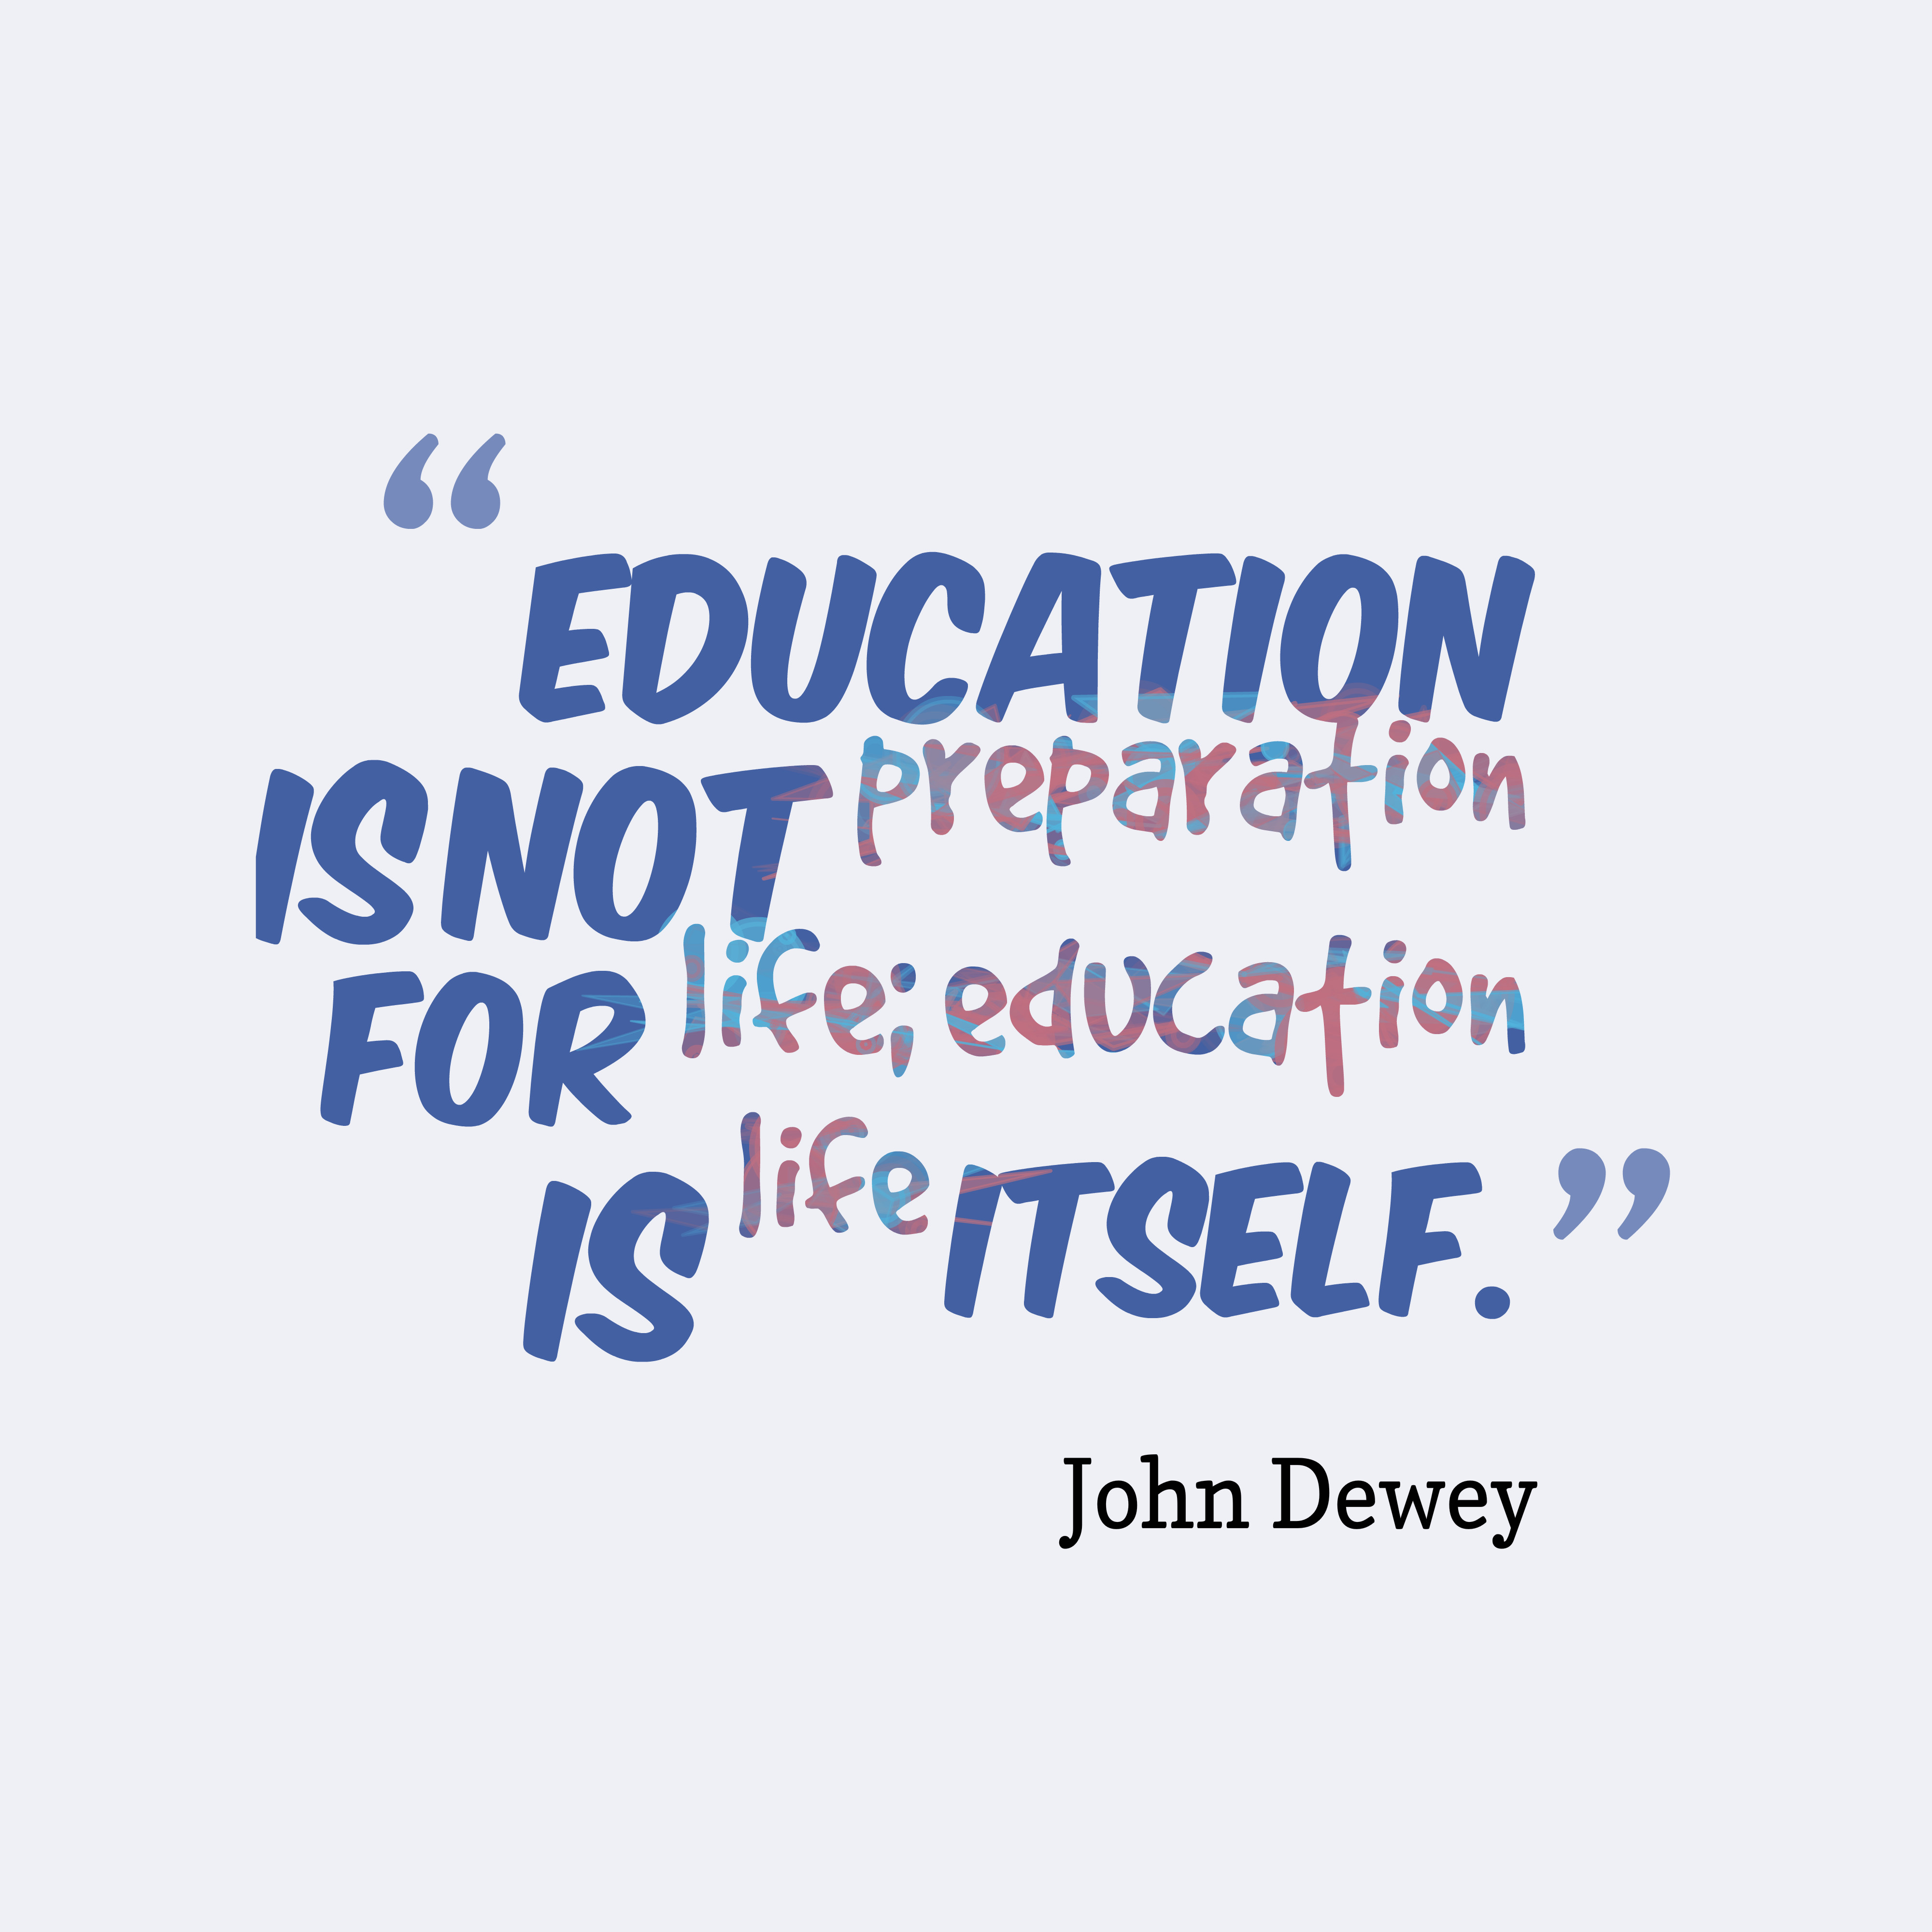 John Dewey Quotes On Education  Picture John Dewey quote about education